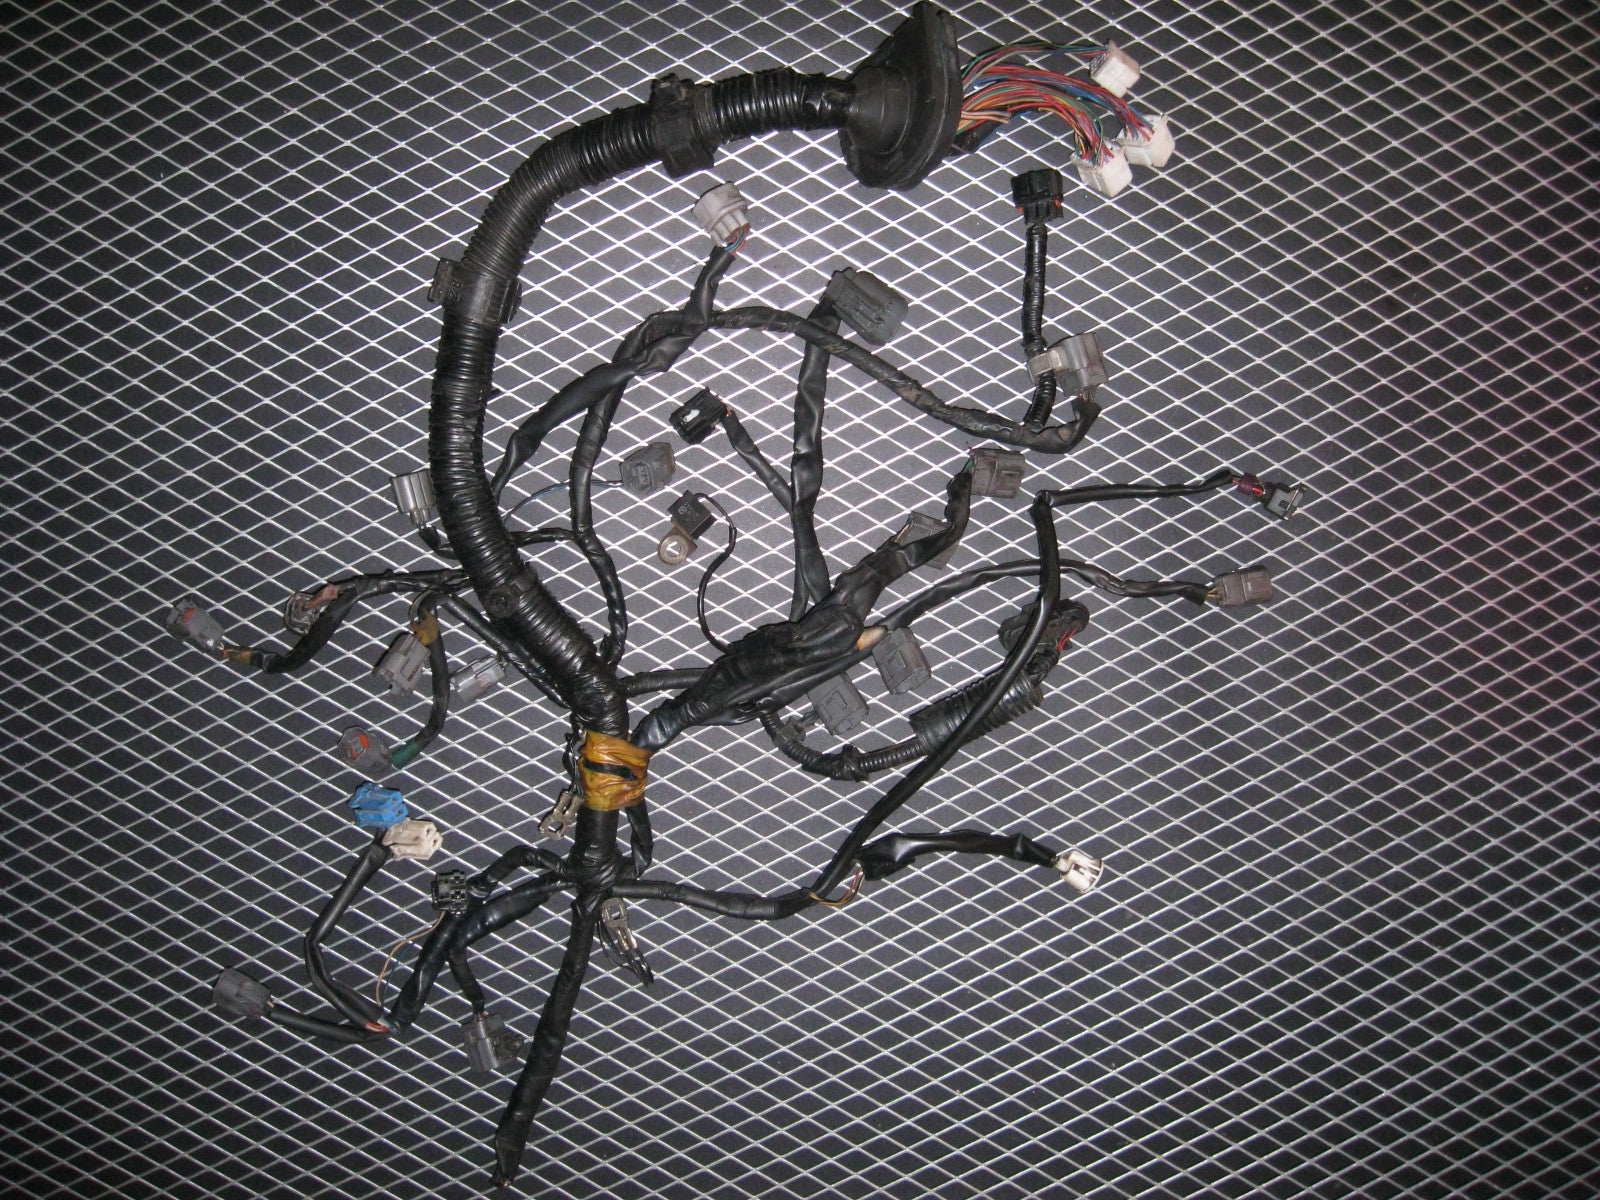 Rx 8 Engine Wiring Harness Diagram Electrical Diagrams 2006 Mazda Rx8 Circuits Symbols U2022 1999 Gmc Yukon Denali